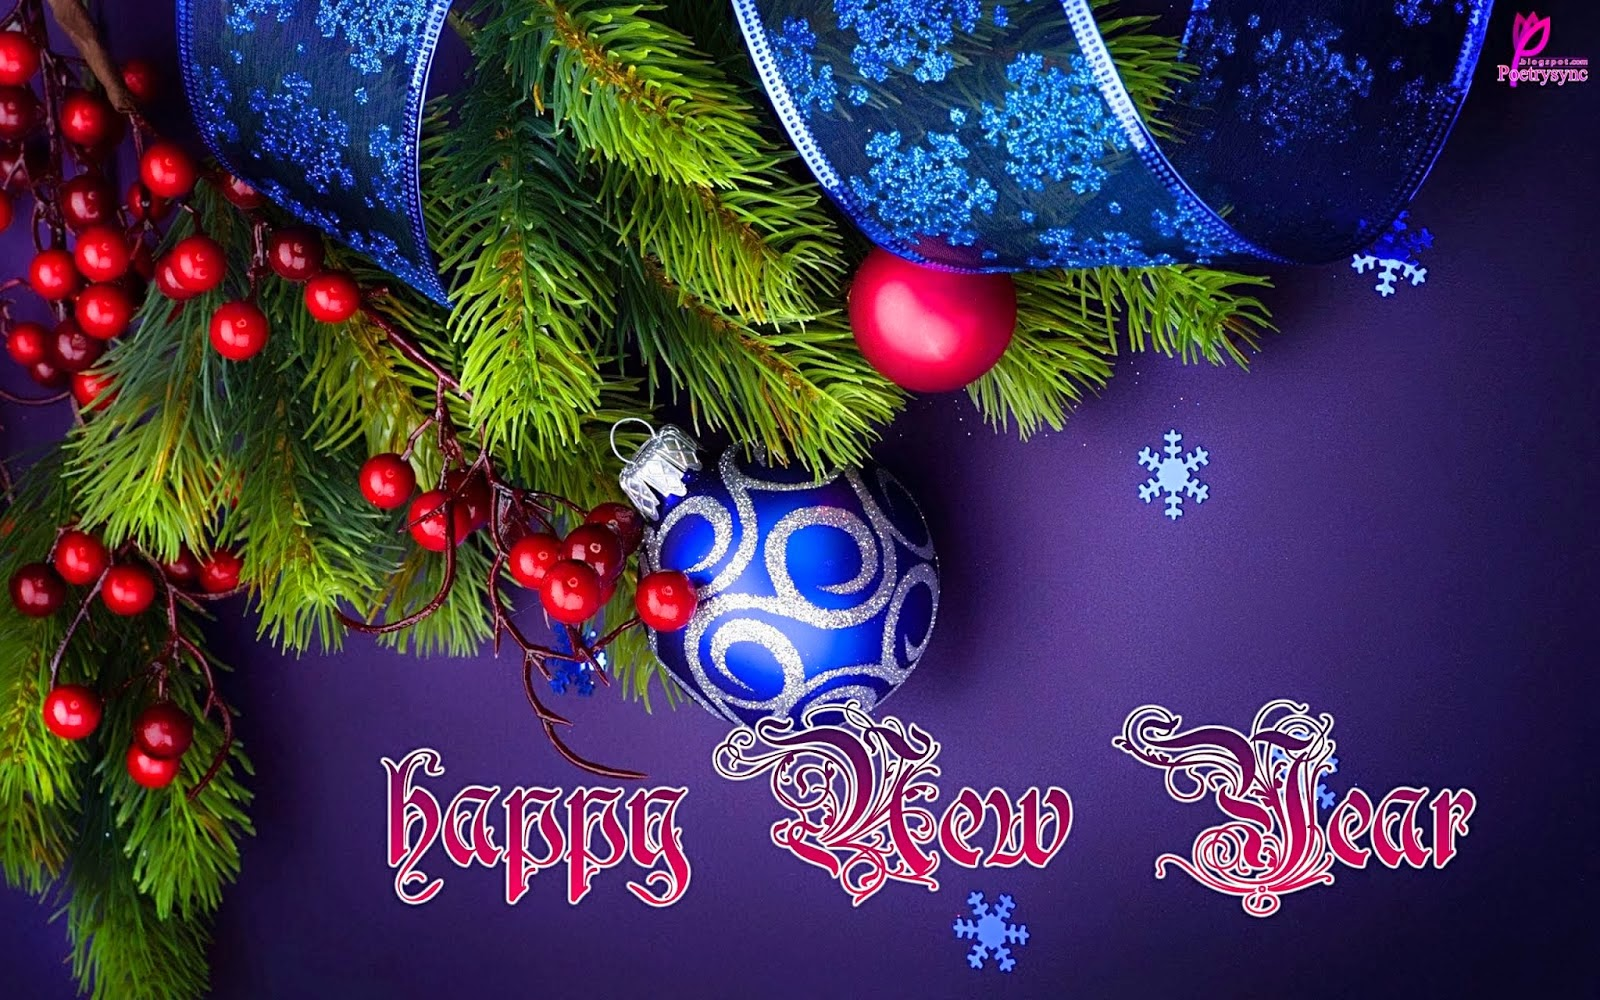 happy new year 2015 new is a good site for wallpapers of 2015 and you can download and enjoy and share with your friends